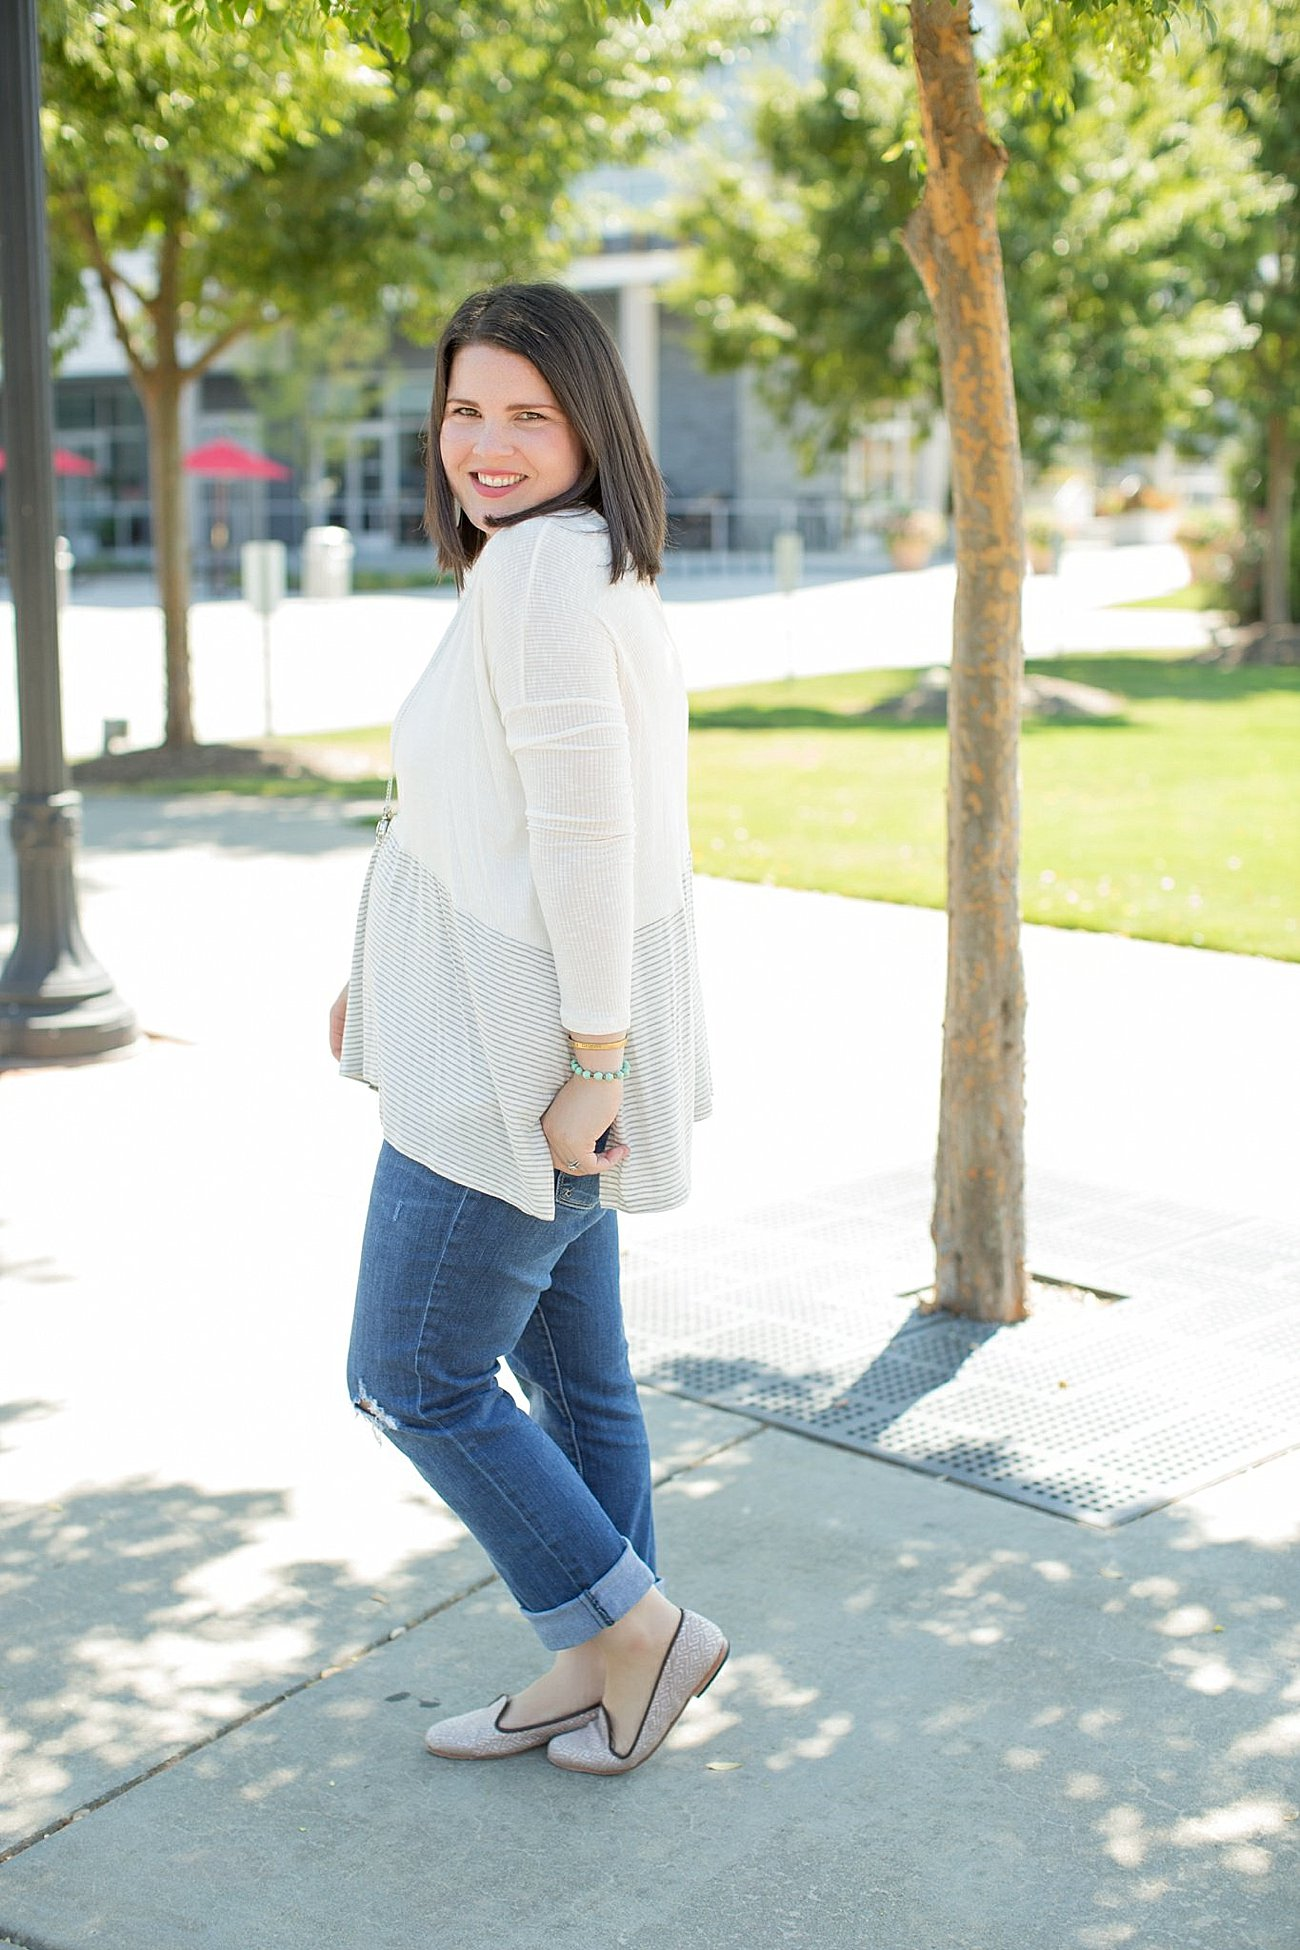 The Flourish Market made in the USA ethical fall clothing (9)